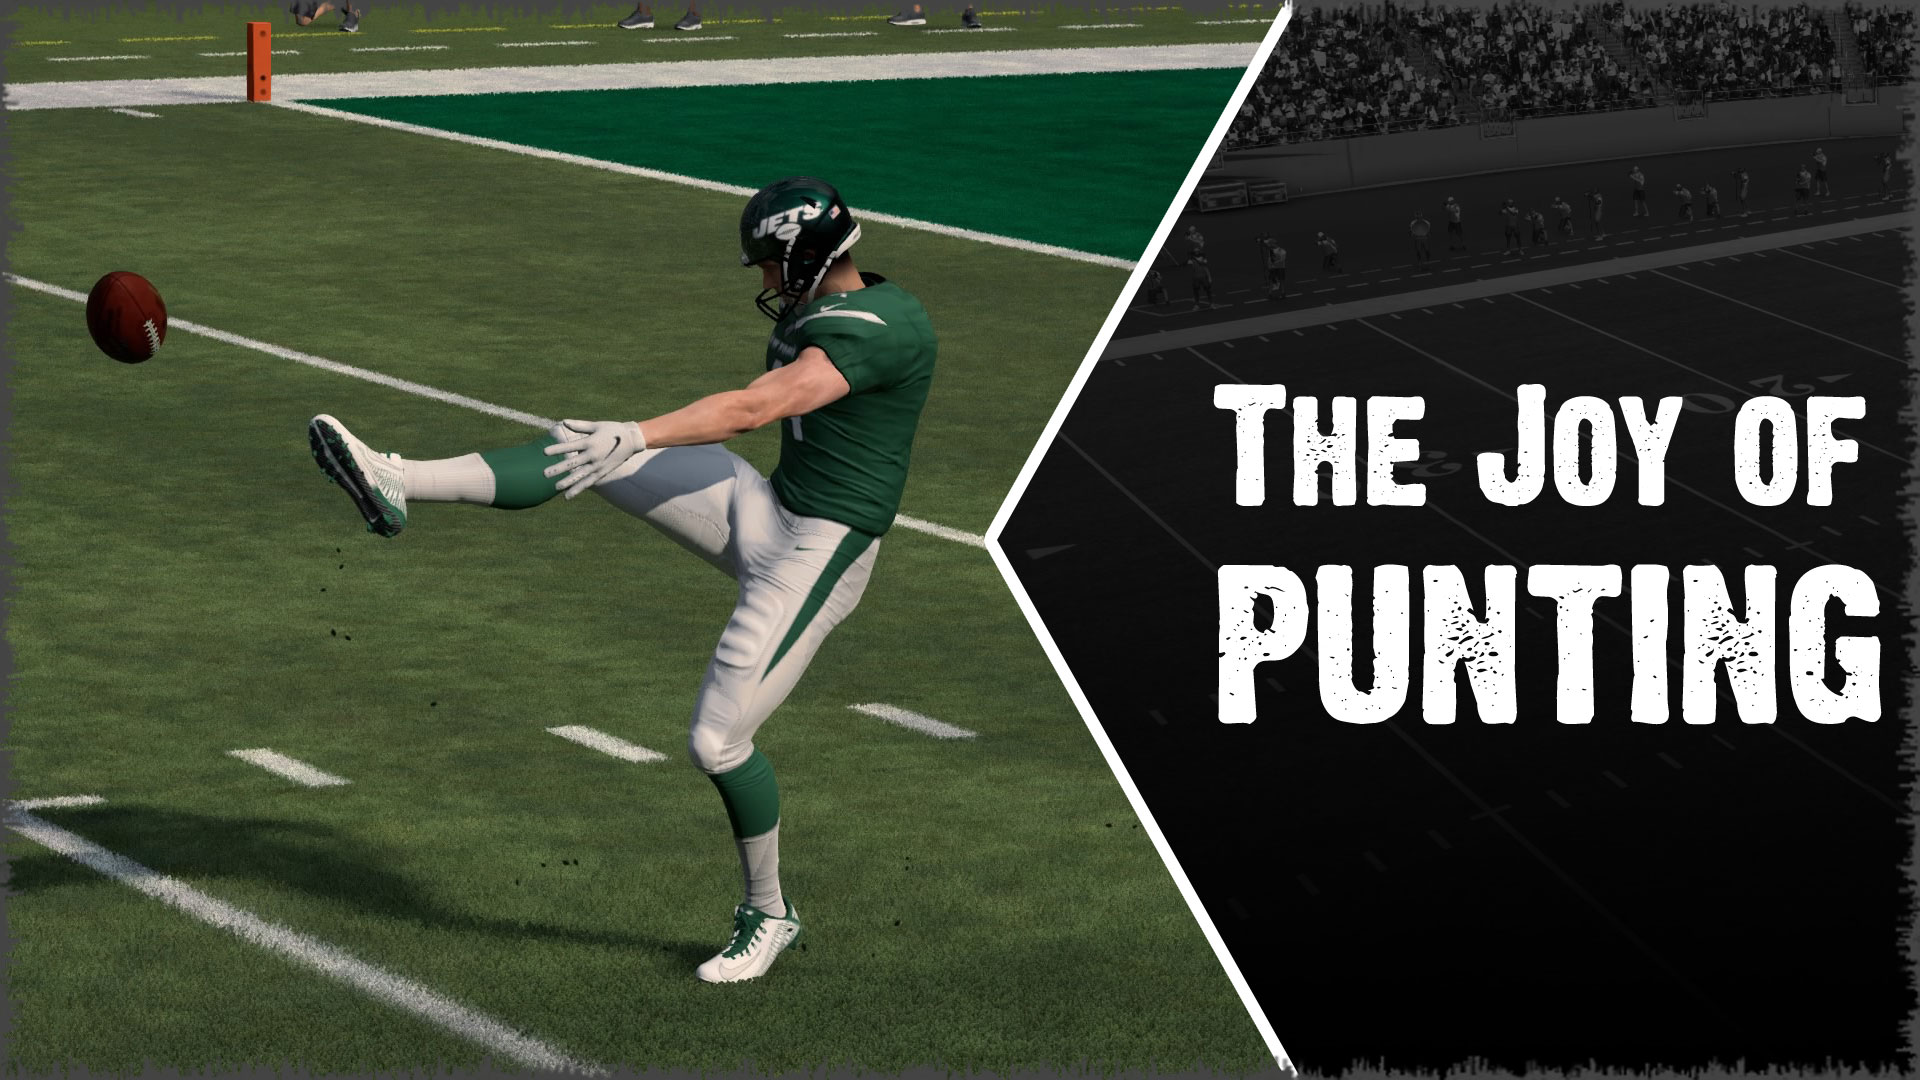 Punting the ball away is easily the most effective play in the history of football.